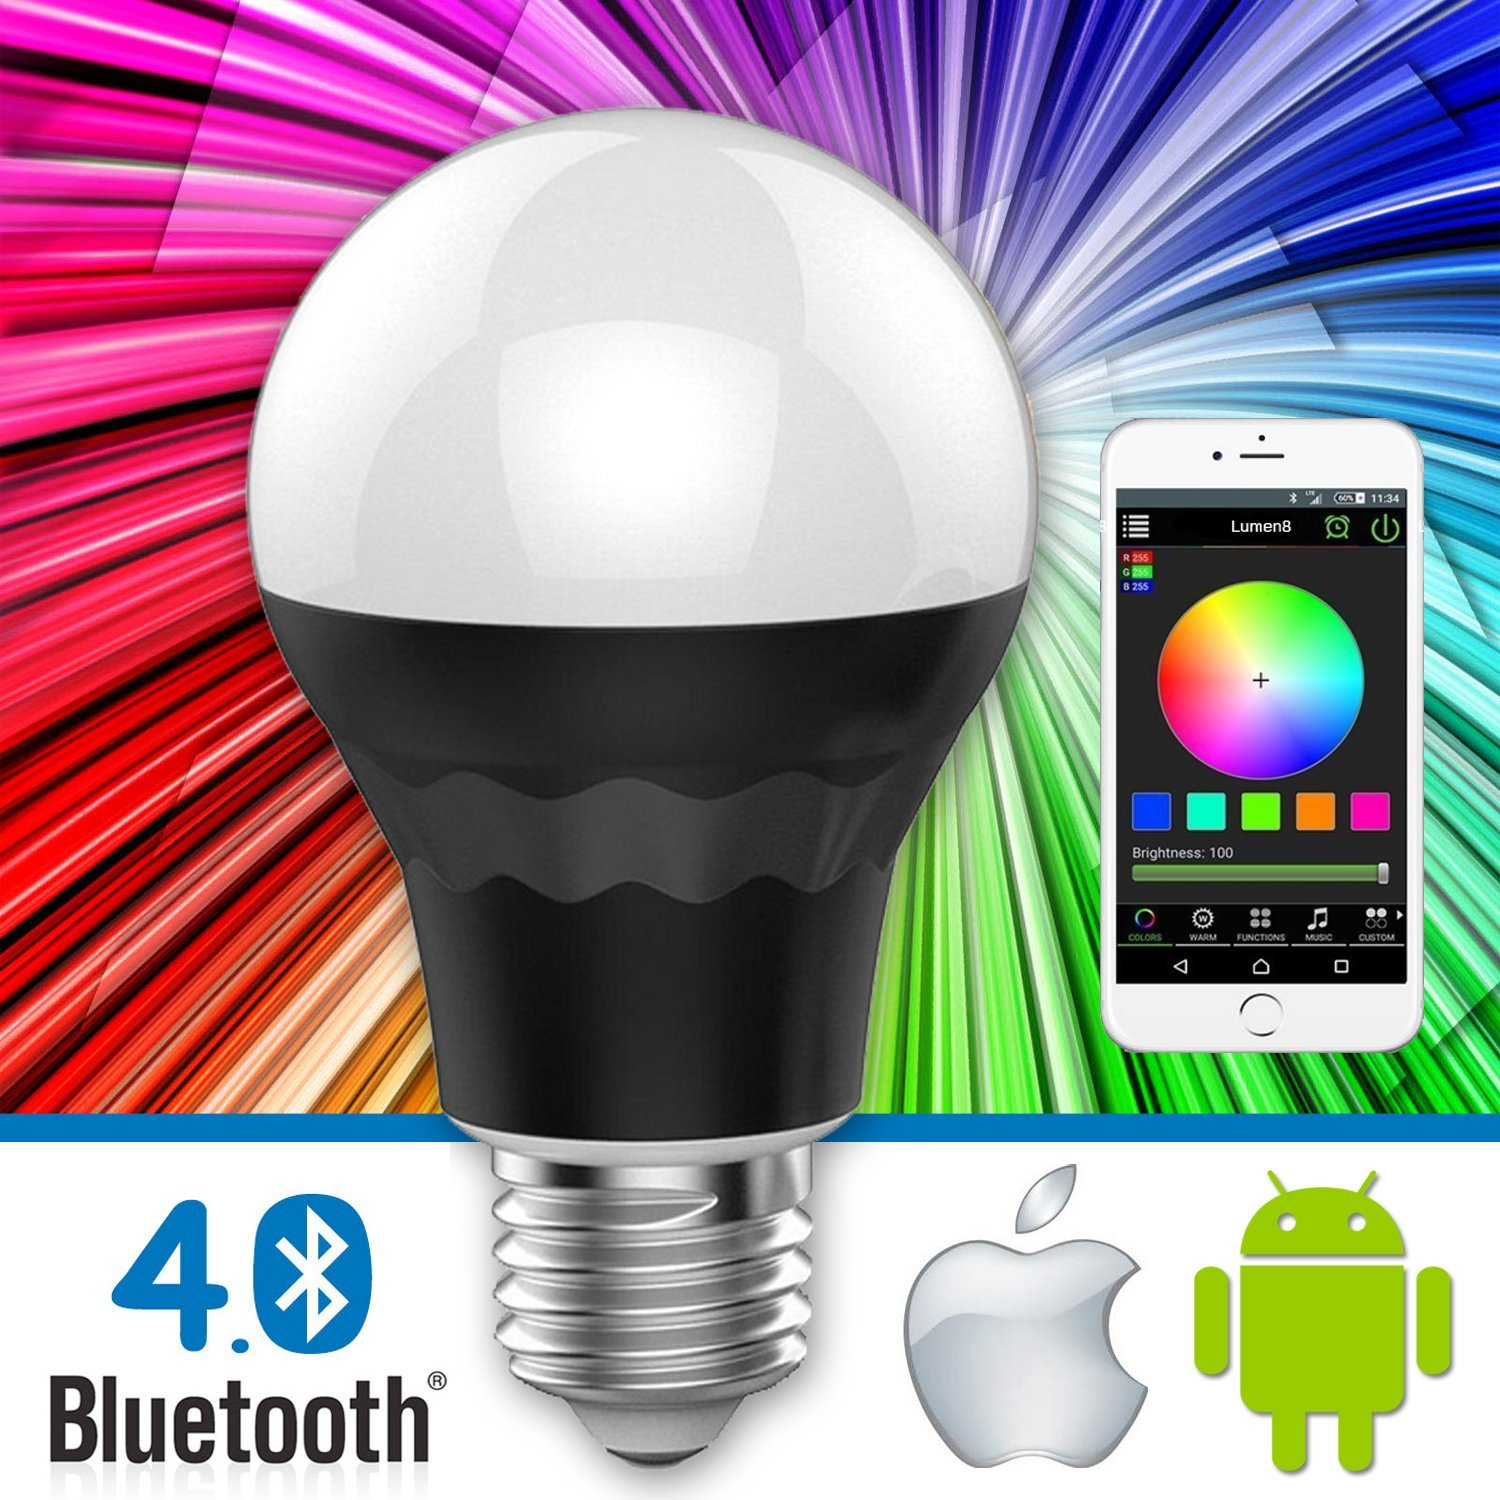 iphone controlled lighting. Lumen8 Bluetooth 7.5W Multi-Colored Smart LED Light Bulb; Smartphone Controlled, Dimmable - Works With IPhone, Android Phone And Tablets (BT7WB1) Iphone Controlled Lighting